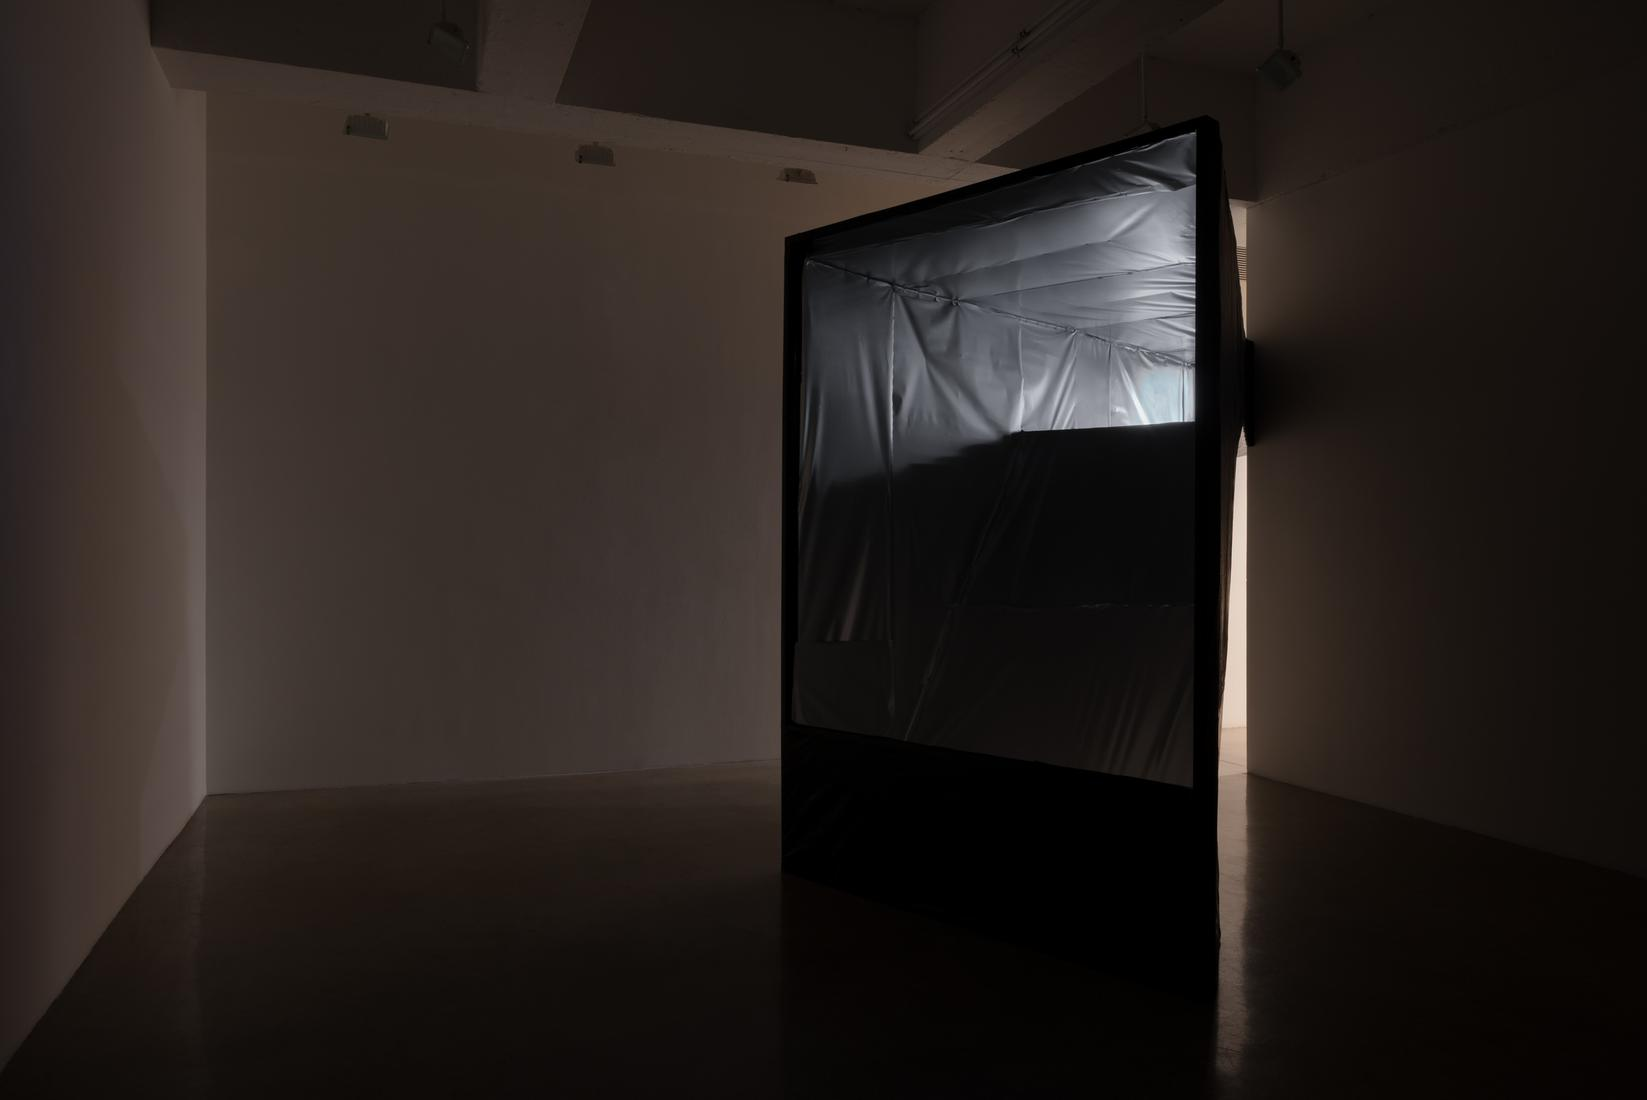 June 6 — July 26, 2019 - curated by Jenny Jaskey and Mia Locks - Living in a Lightbulb -  - Exhibitions